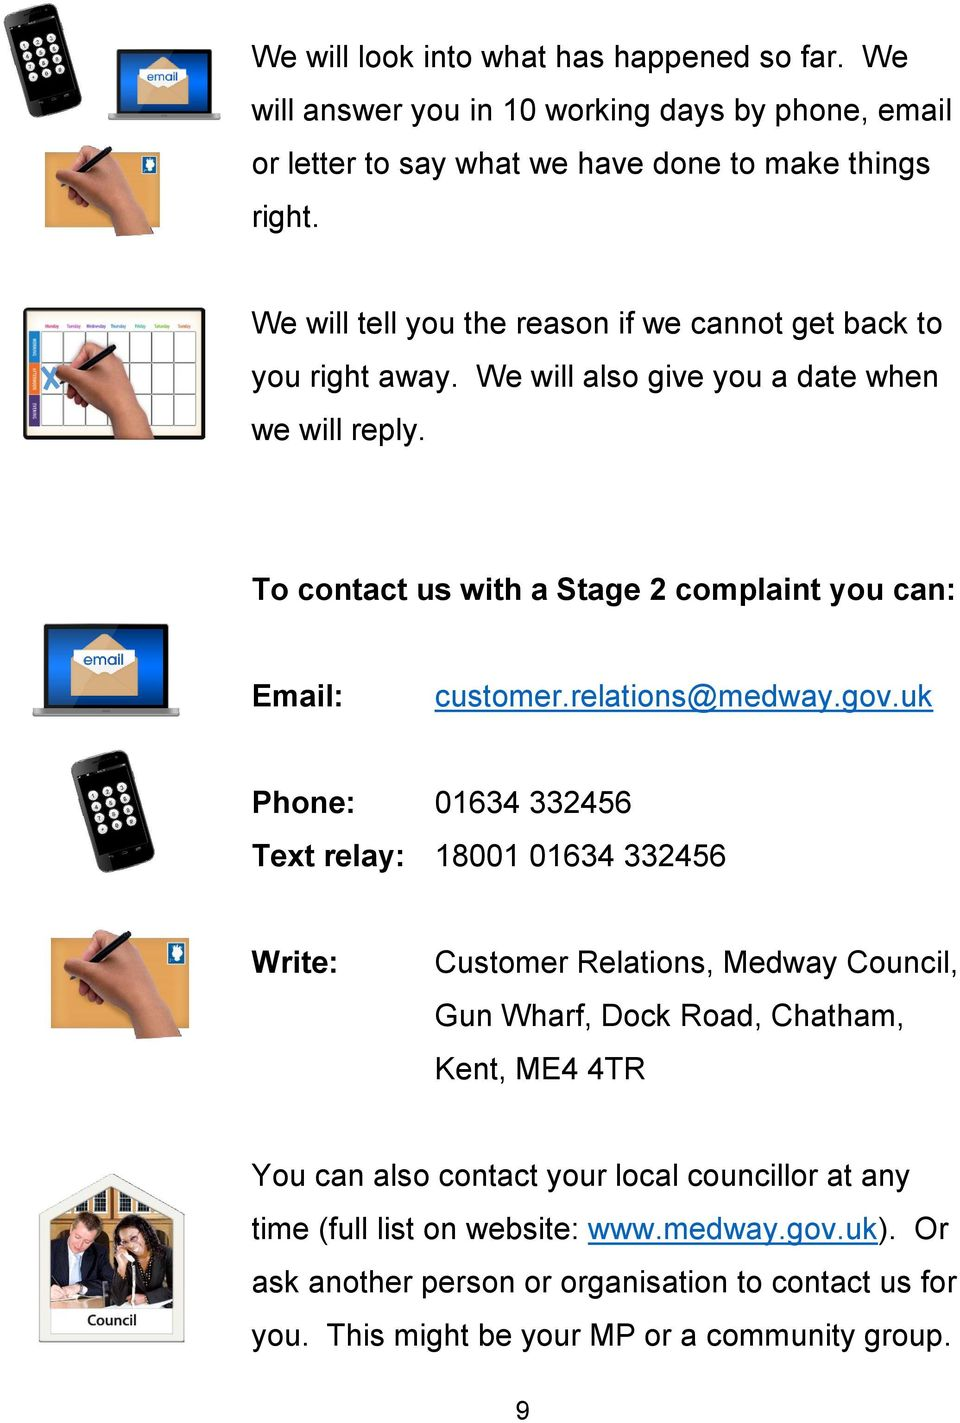 To contact us with a Stage 2 complaint you can: Email: customer.relations@medway.gov.